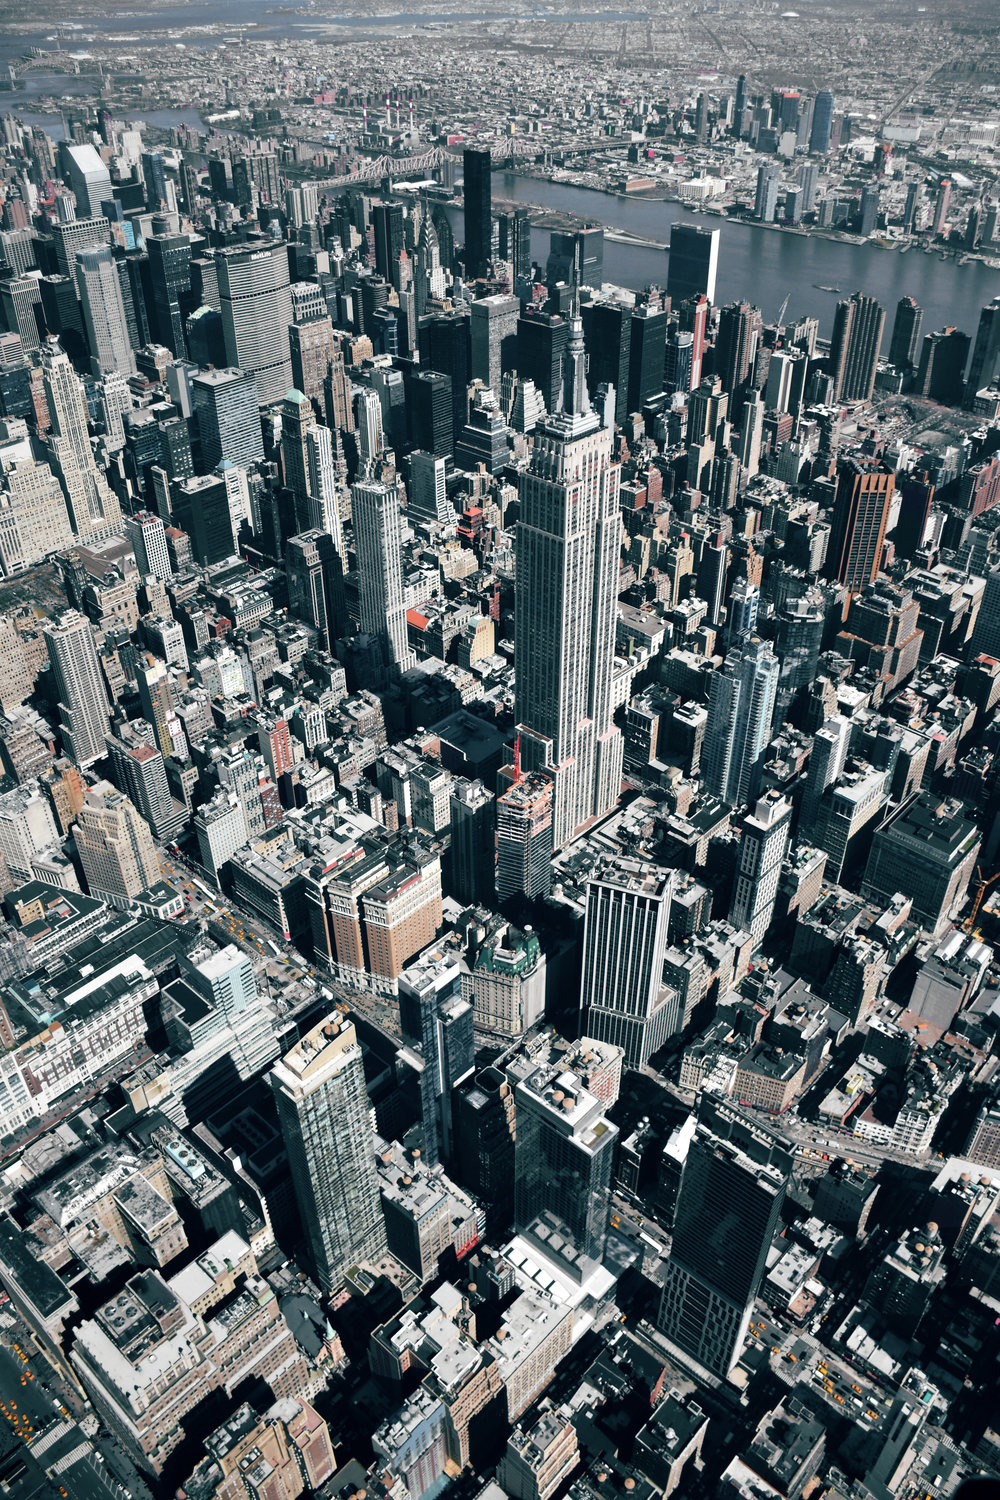 3/31/2017 Empire State Building New York, New York 40.748334, -73.985523 This week I was fortunate enough to take a helicopter flight over NYC with the incredible crew at @nyonair. One of my favorite moments was when we flew over Midtown, allowing me to capture this gorgeous view of the Empire State Building. The structure is the second tallest building in the city, 5th tallest in the United States, and 34th tallest in the world standing at 1,454 feet, with 102 stories. Image taken by Micah Marshall